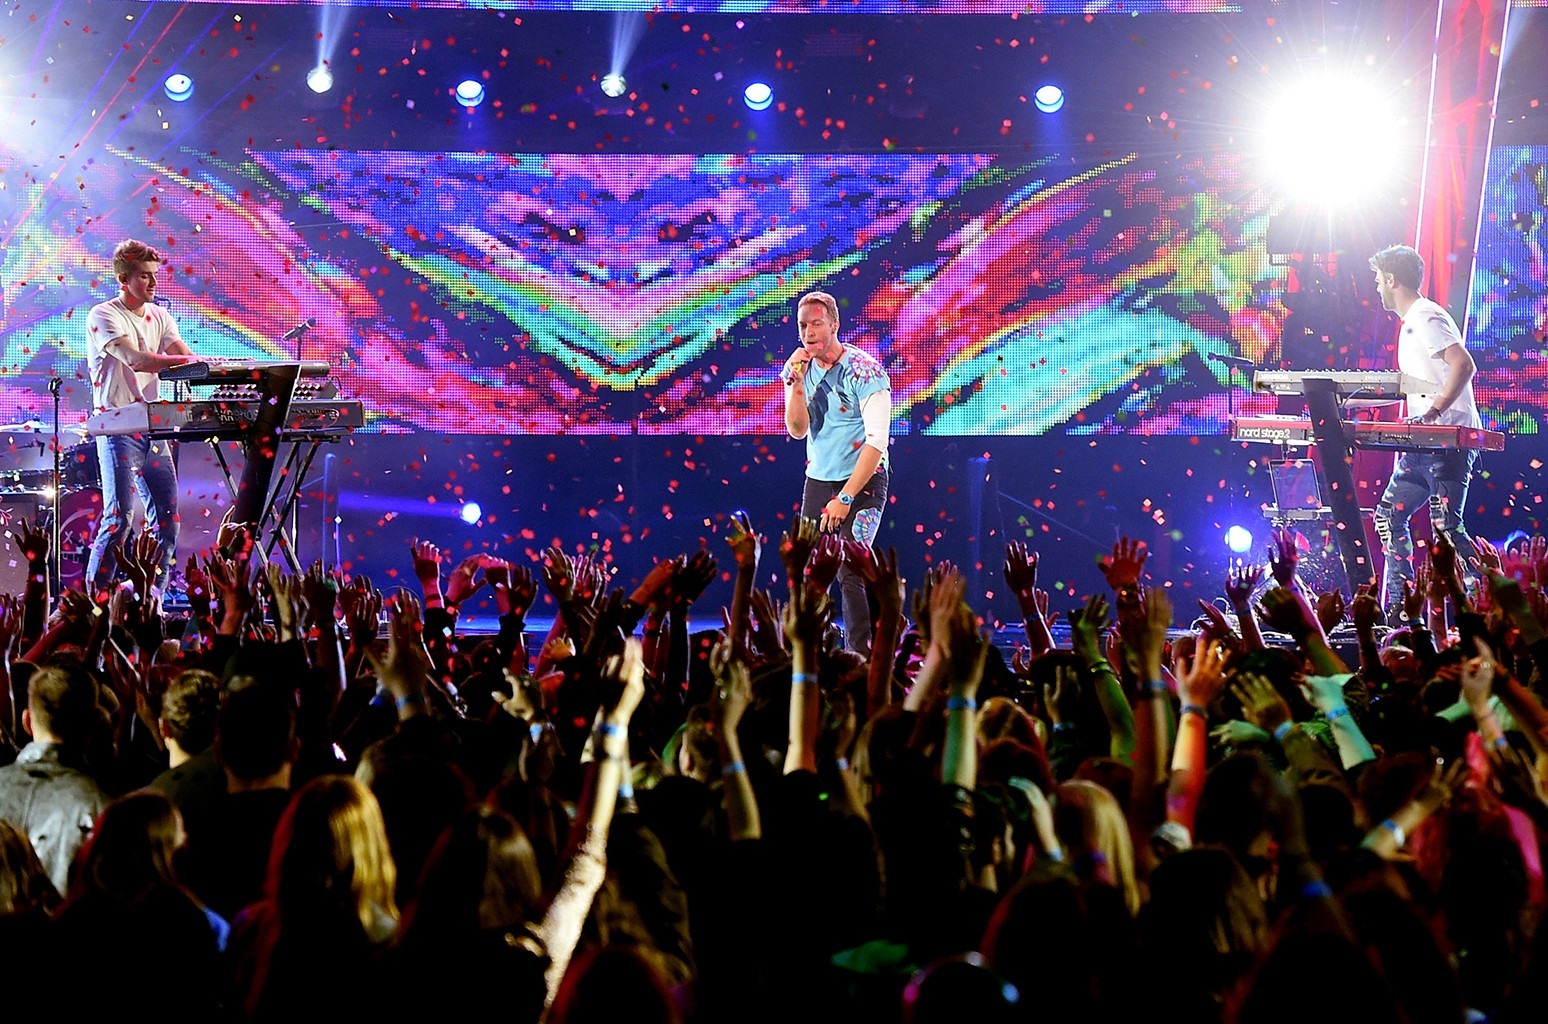 Chris Martin performs with The Chainsmokers on March 5, 2017 in Inglewood, Calif.